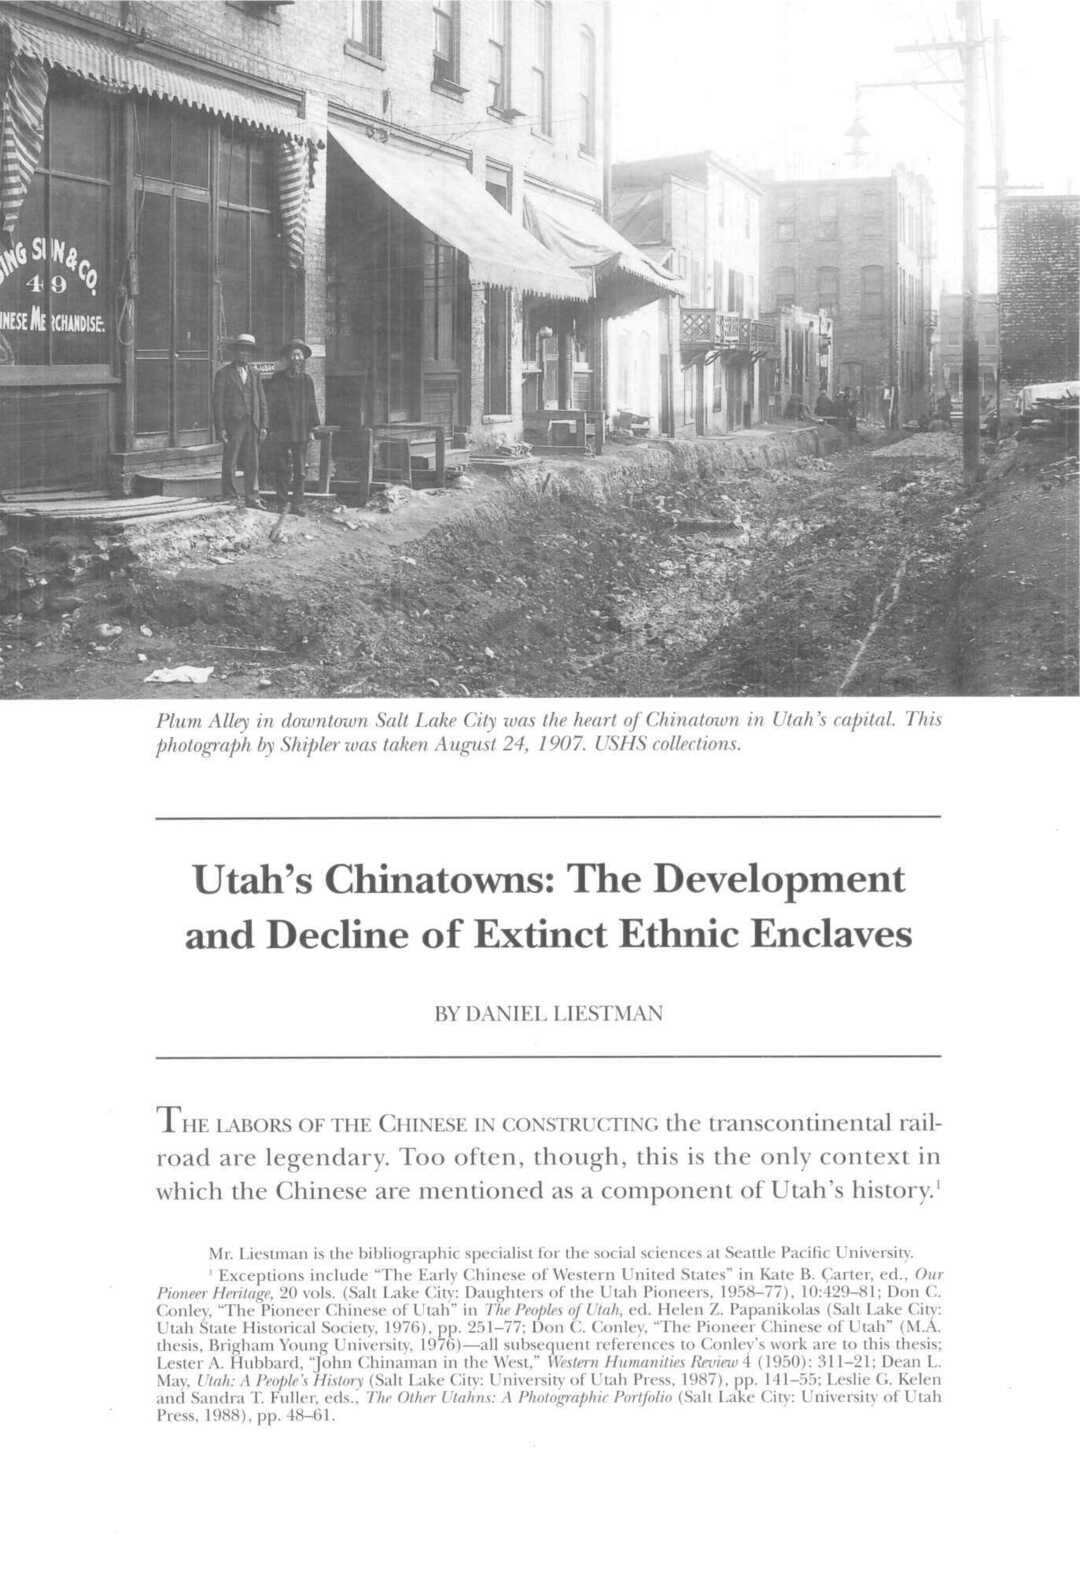 Page 72 of Utah's Chinatowns: The Development and Decline of Extinct Ethnic Enclaves